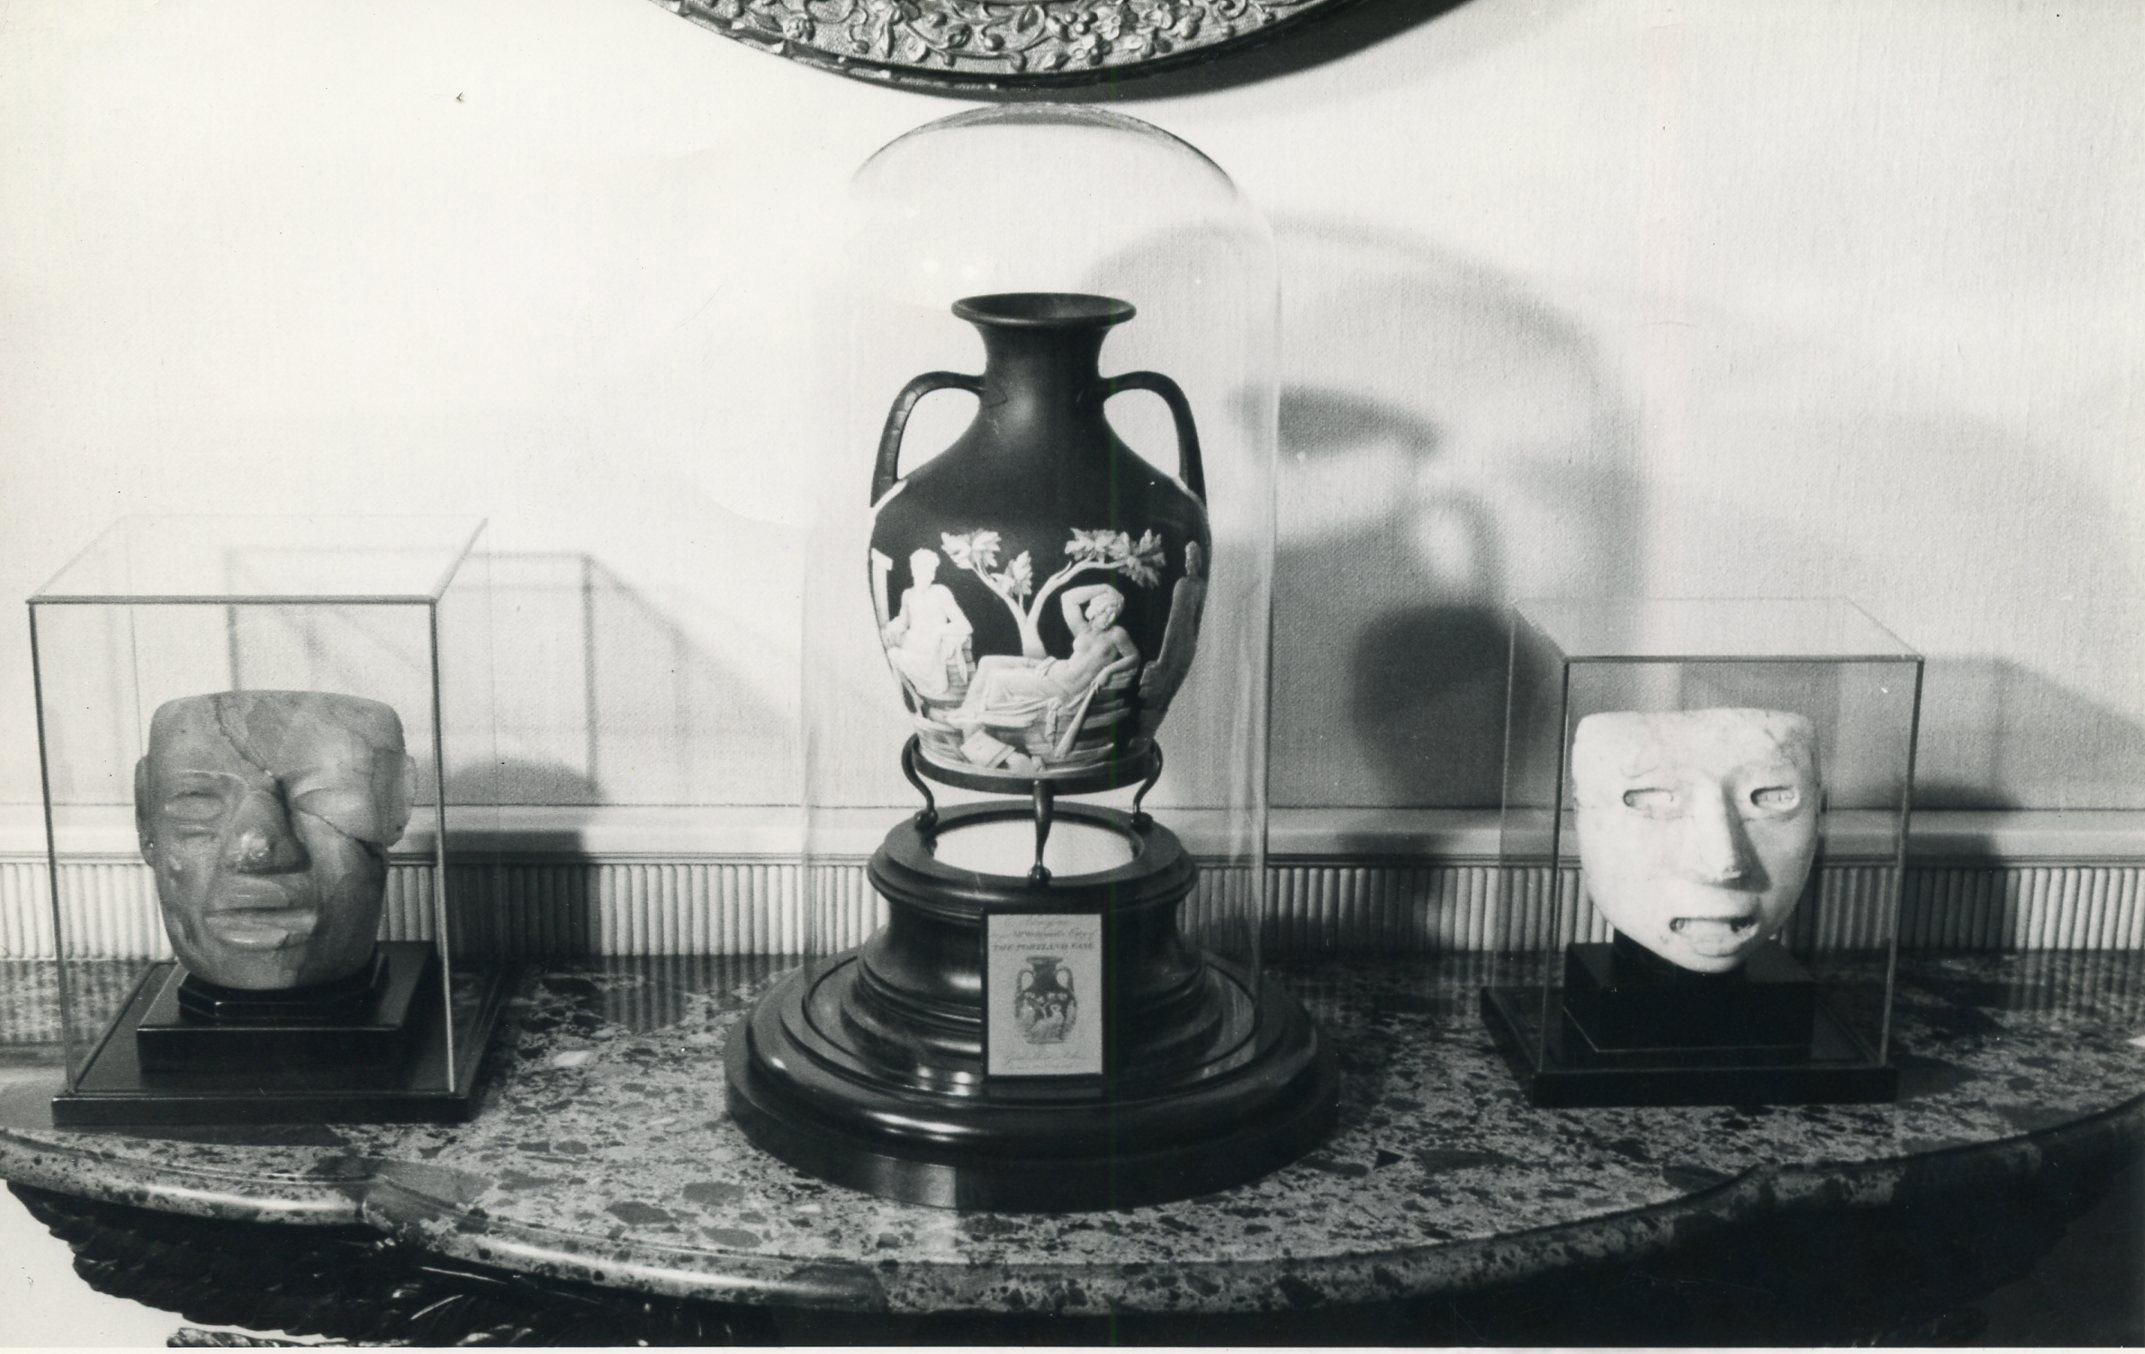 A black and white photograph shows a table attached to a wall. Two stone masks under vitrines flank a low relief vase featuring figures and a tree, also under a vitrine.